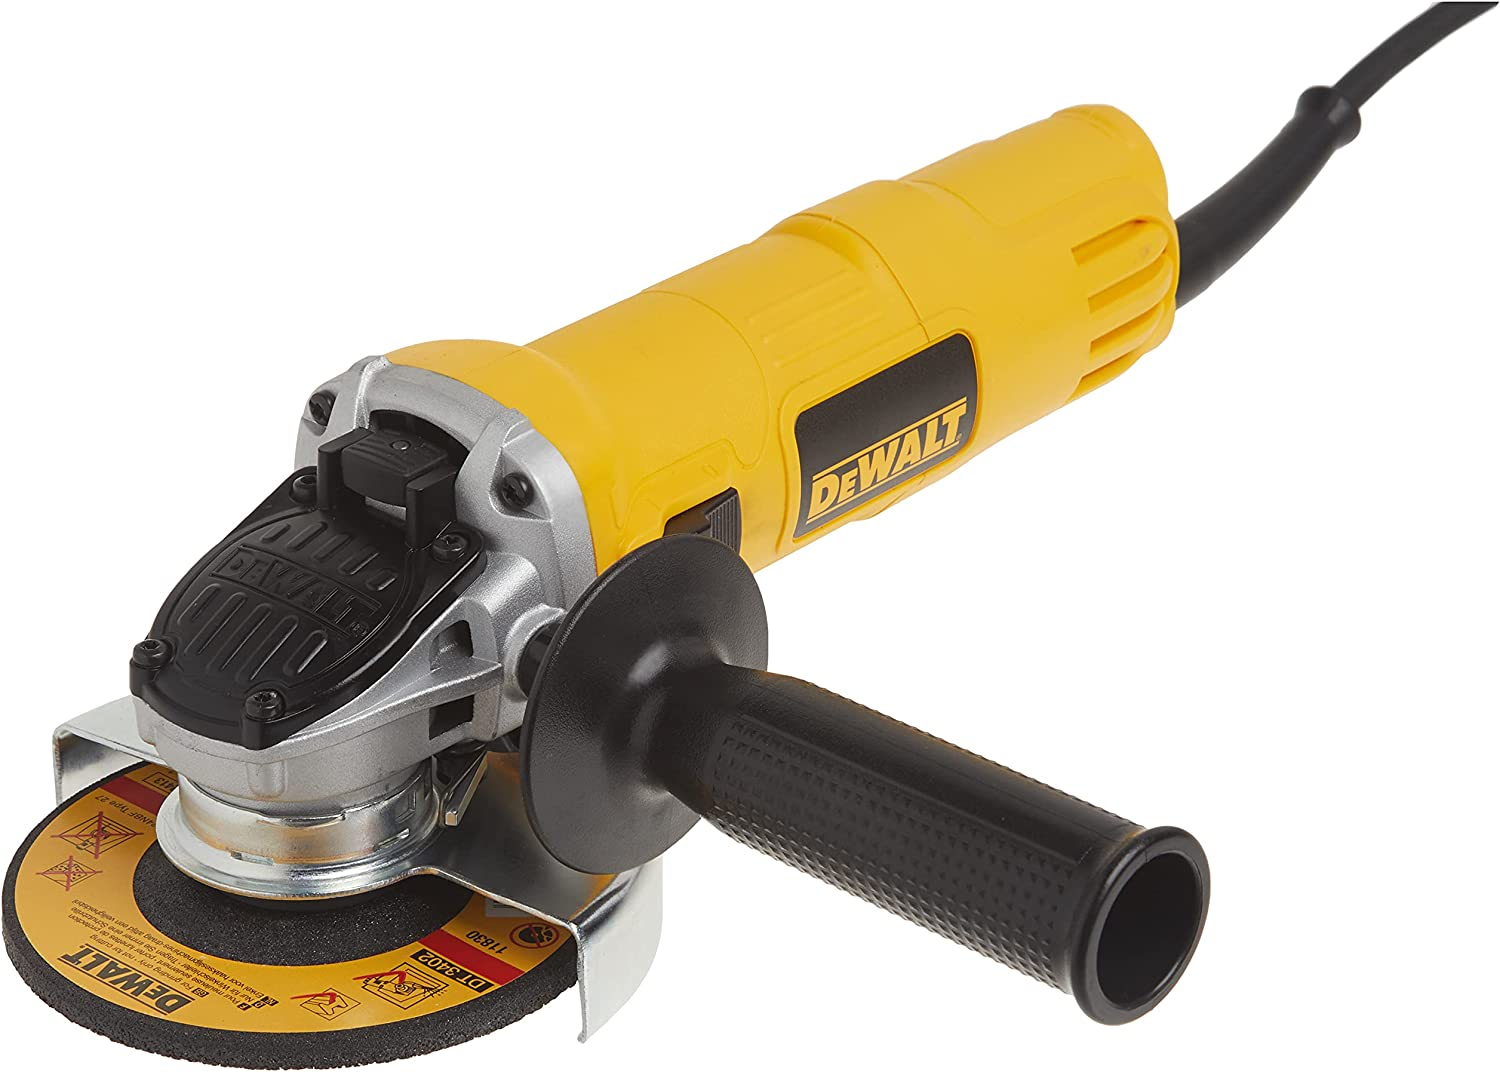 Dewalt Angle Grinder, One-Touch Guard, 4-1/2 -Inch (Dwe4011) , Yellow , Small